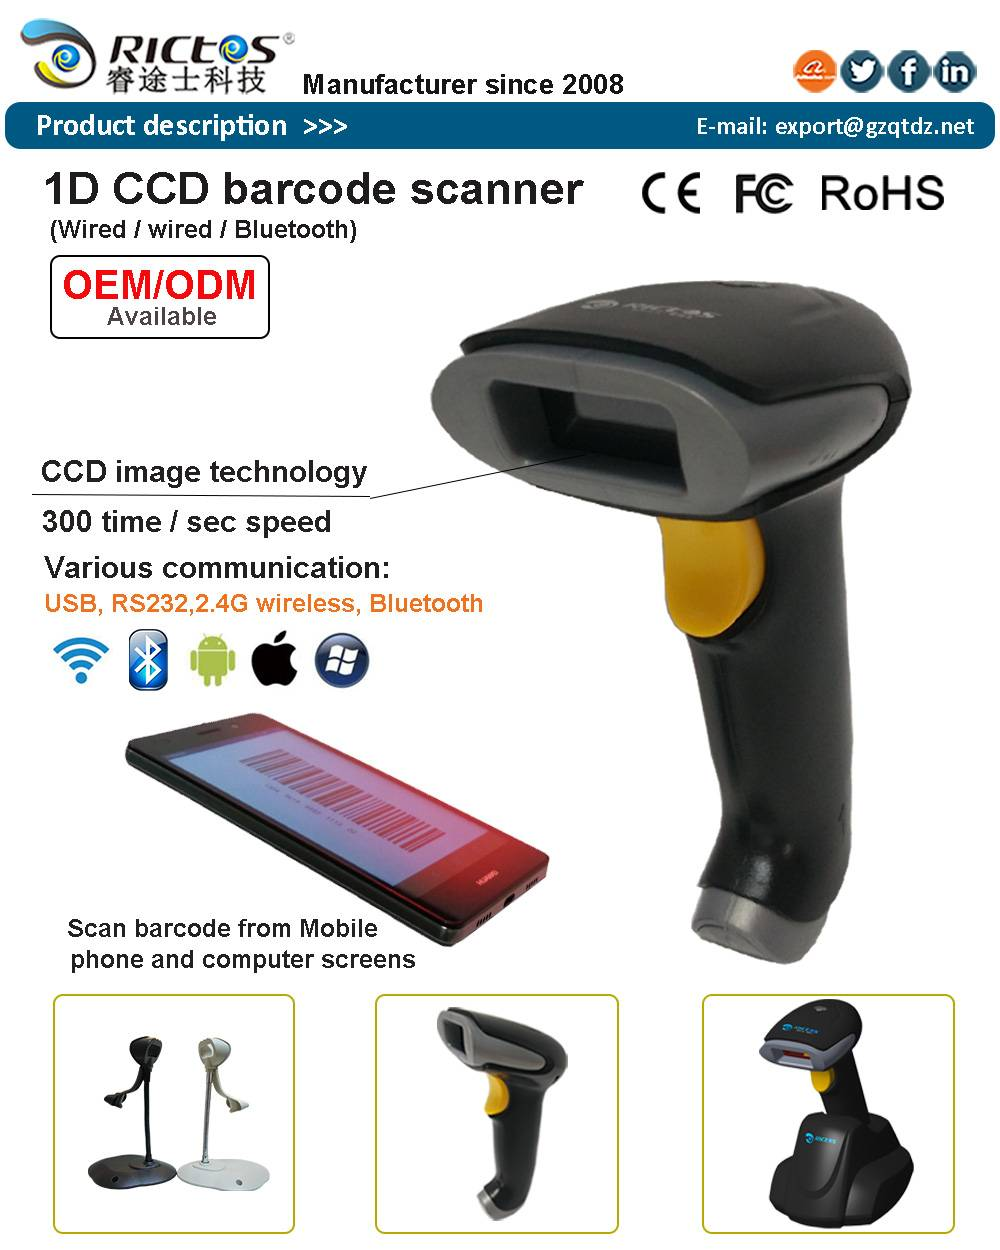 Handheld CCD image barcode scanner for mobile screen